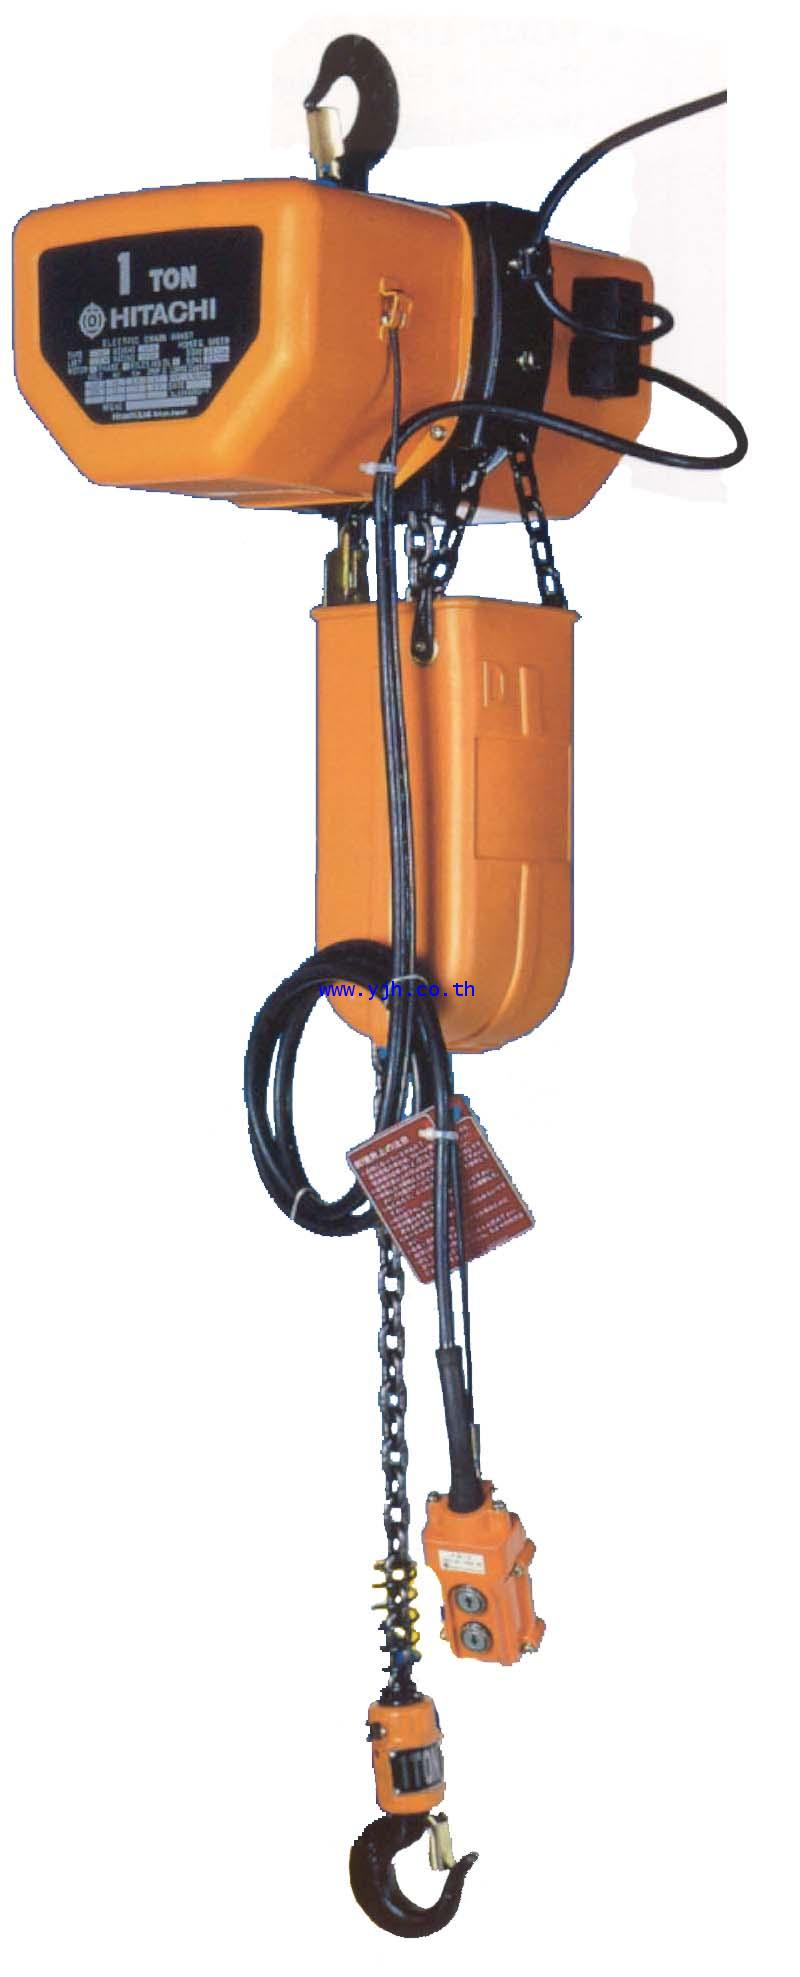 Electric chain hoist hitachi 1sh 1 ton 3054939 for 1 4 ton chain motor